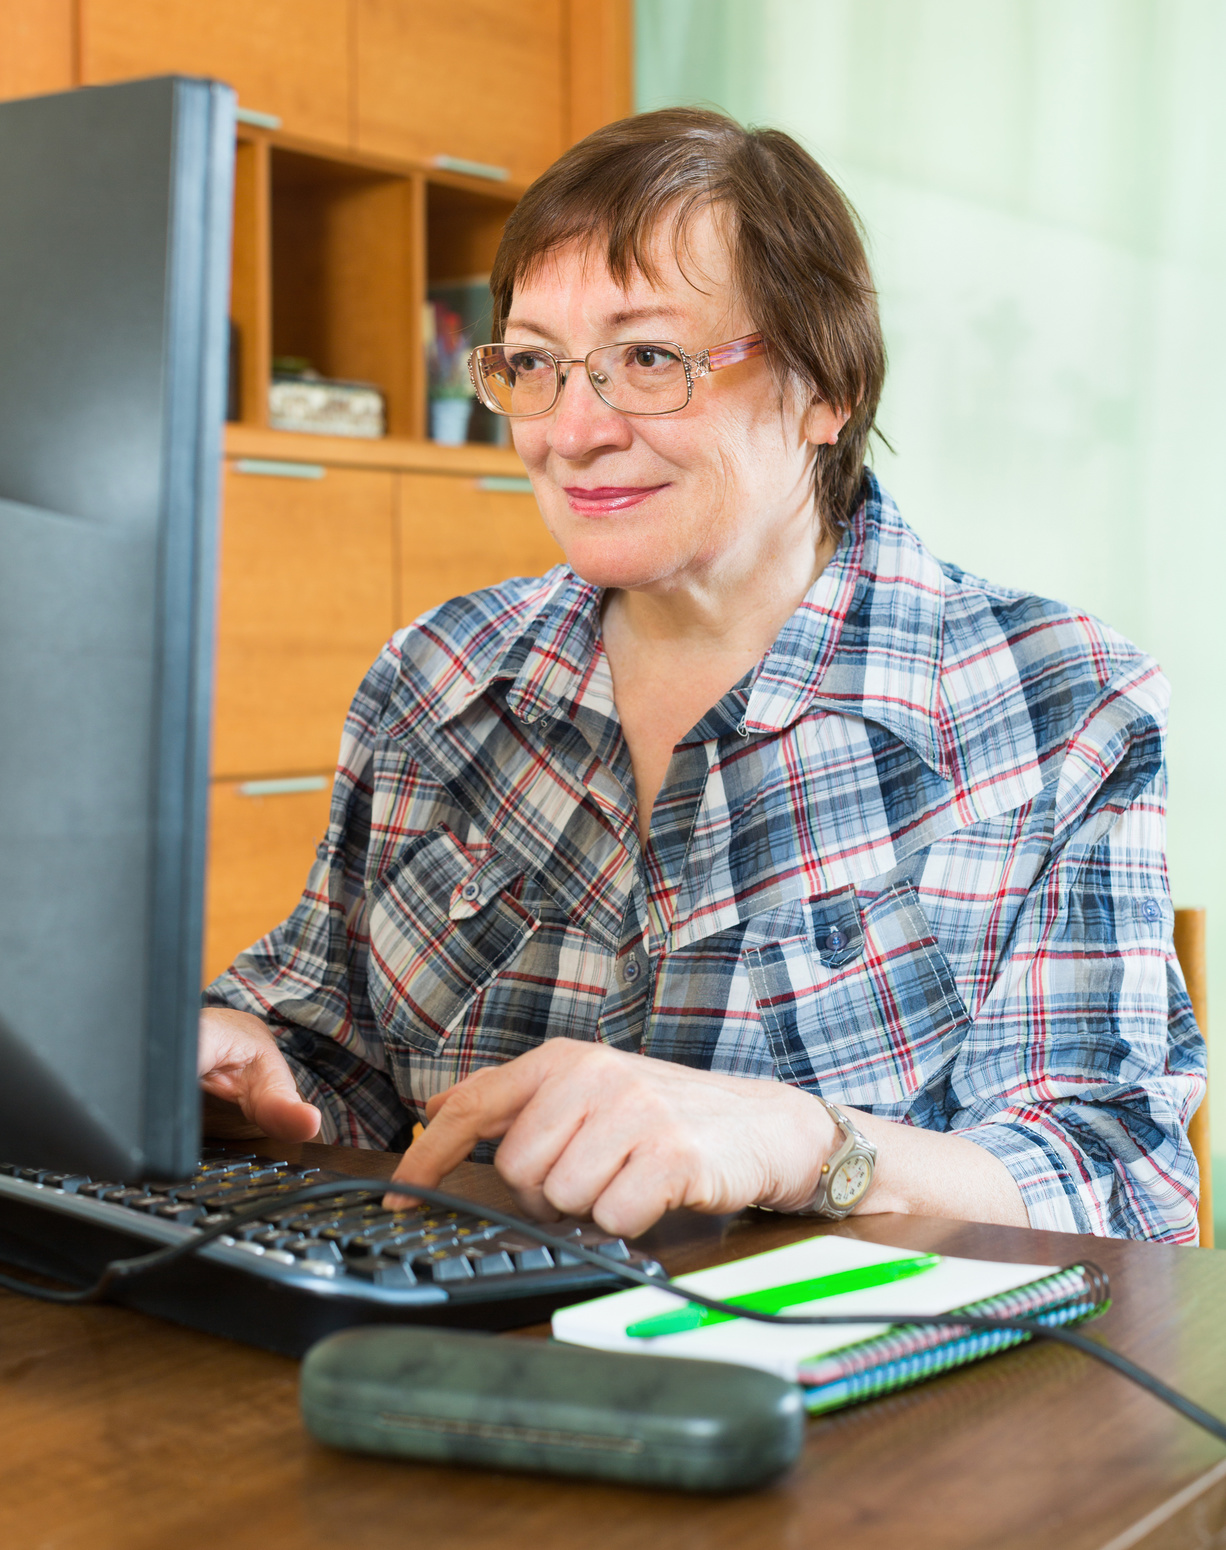 Smiling woman sitting in front of PC and using keyboard